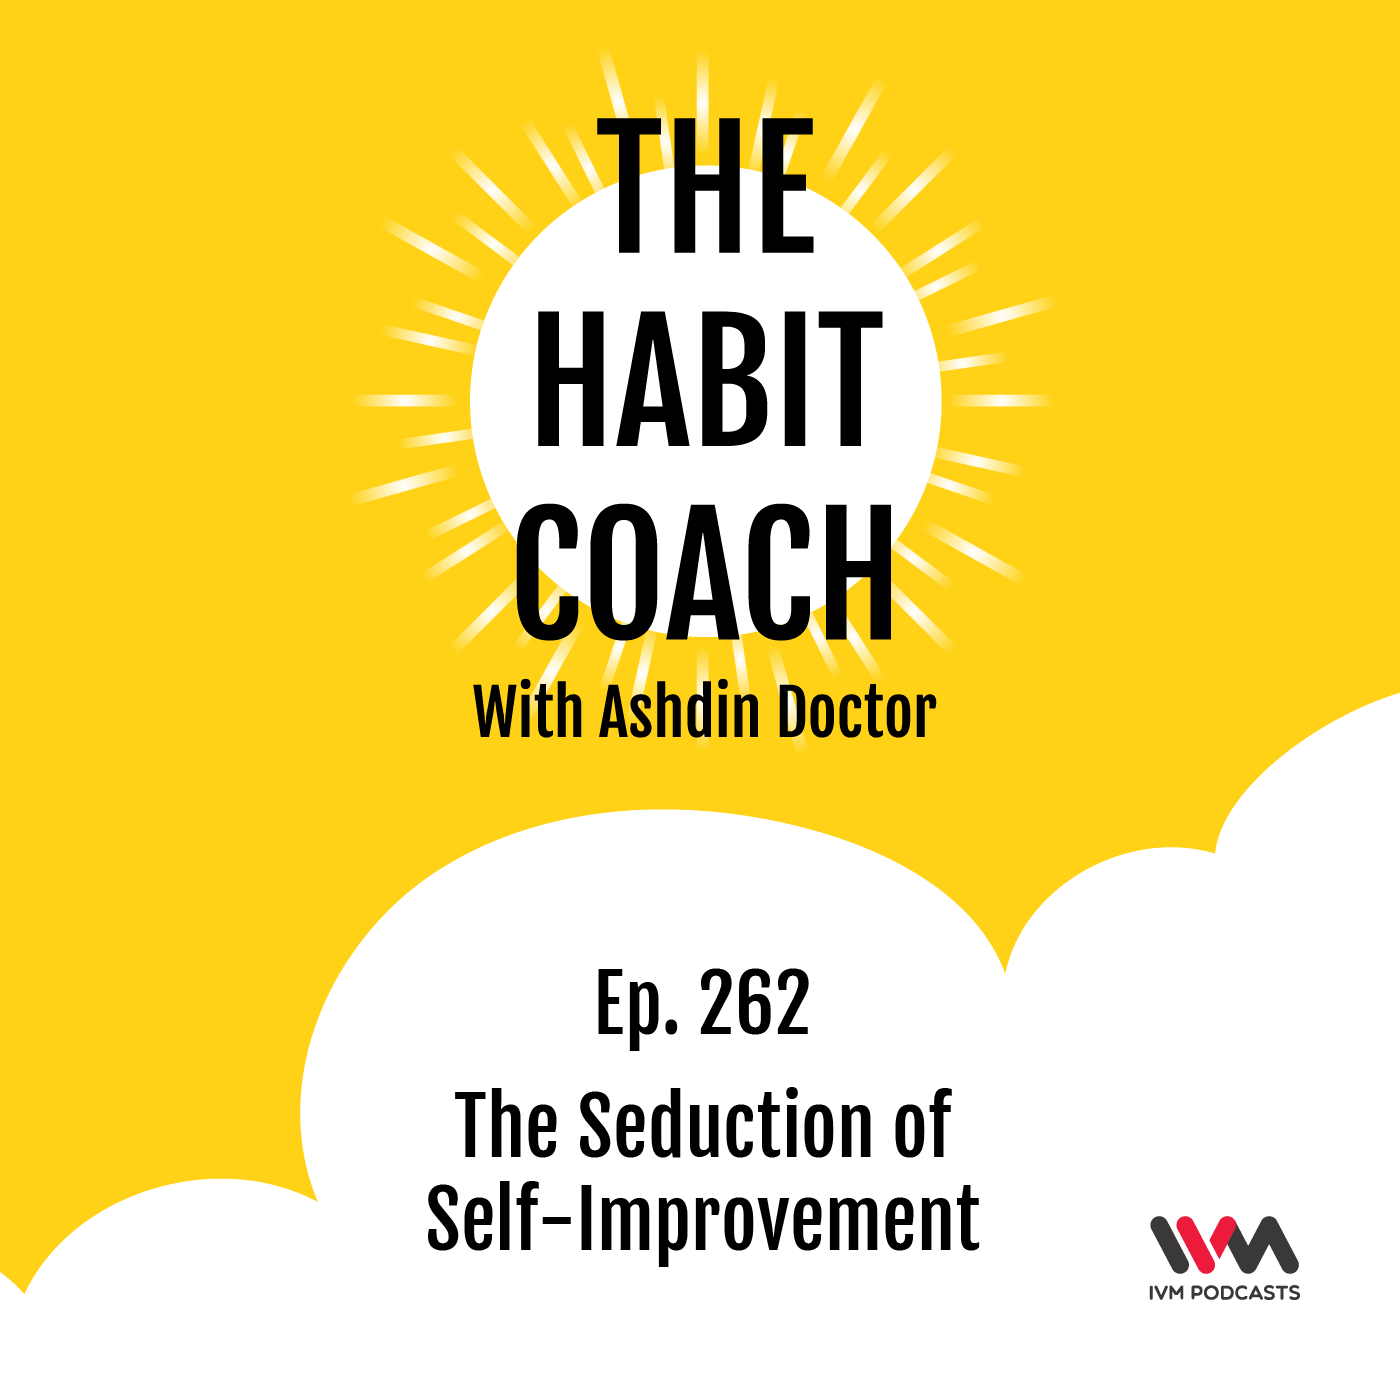 Ep. 262: The Seduction of Self-Improvement